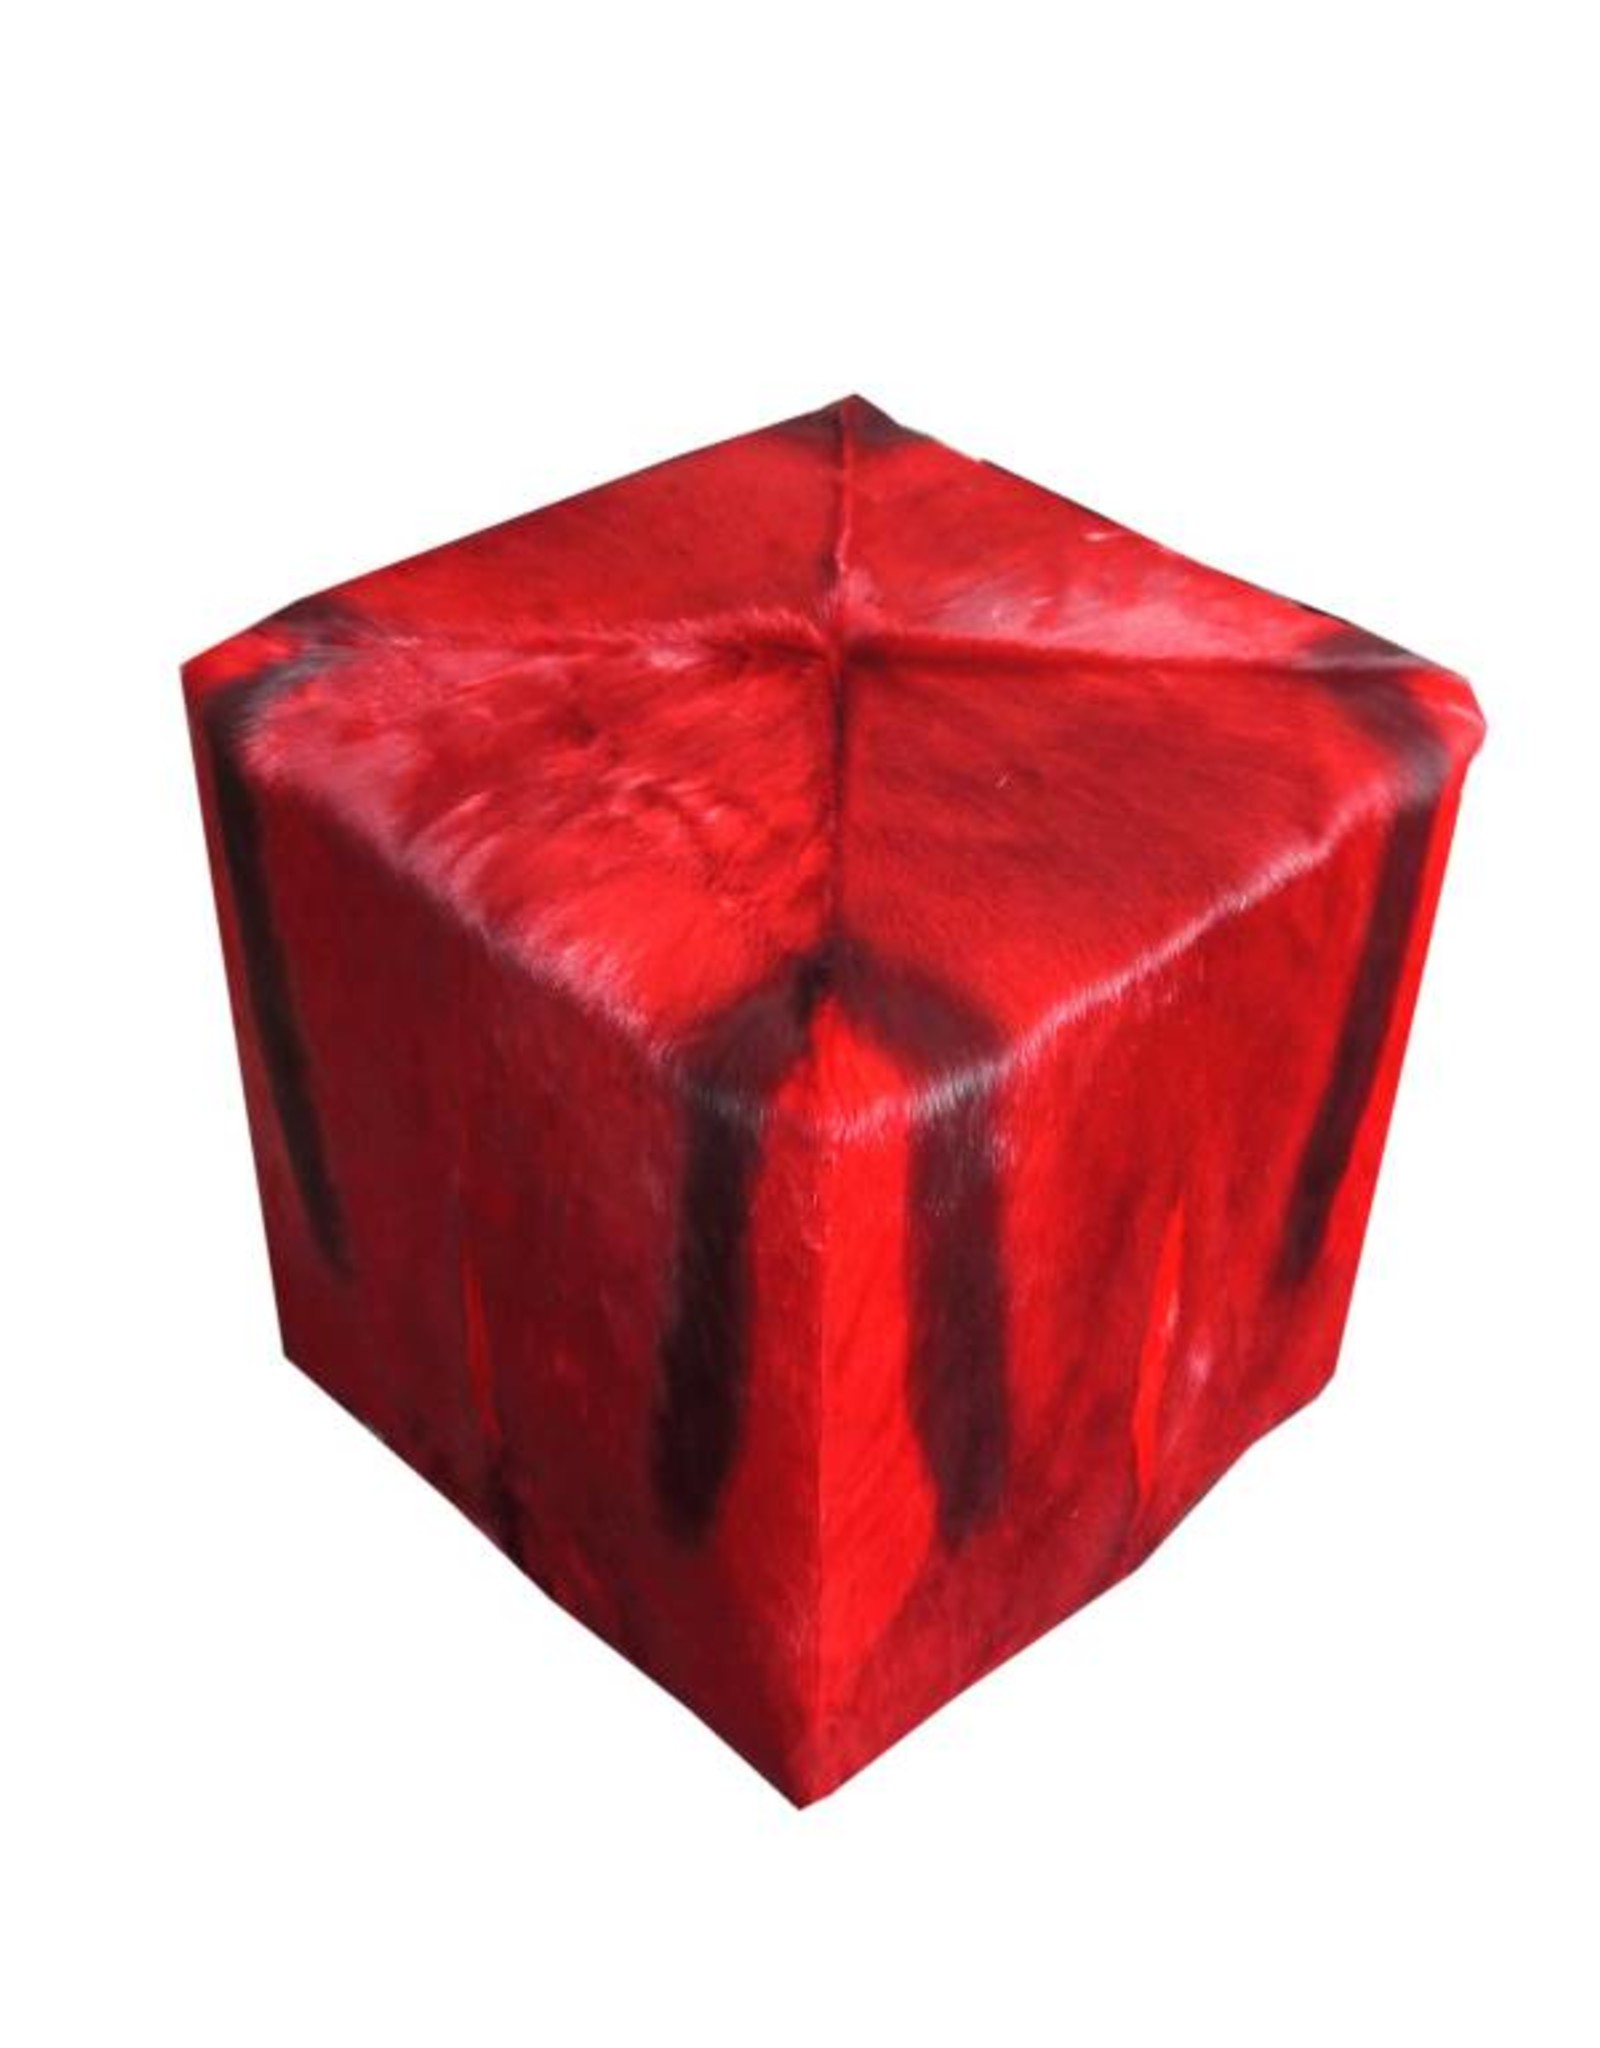 Springbock Hocker RED CUBE